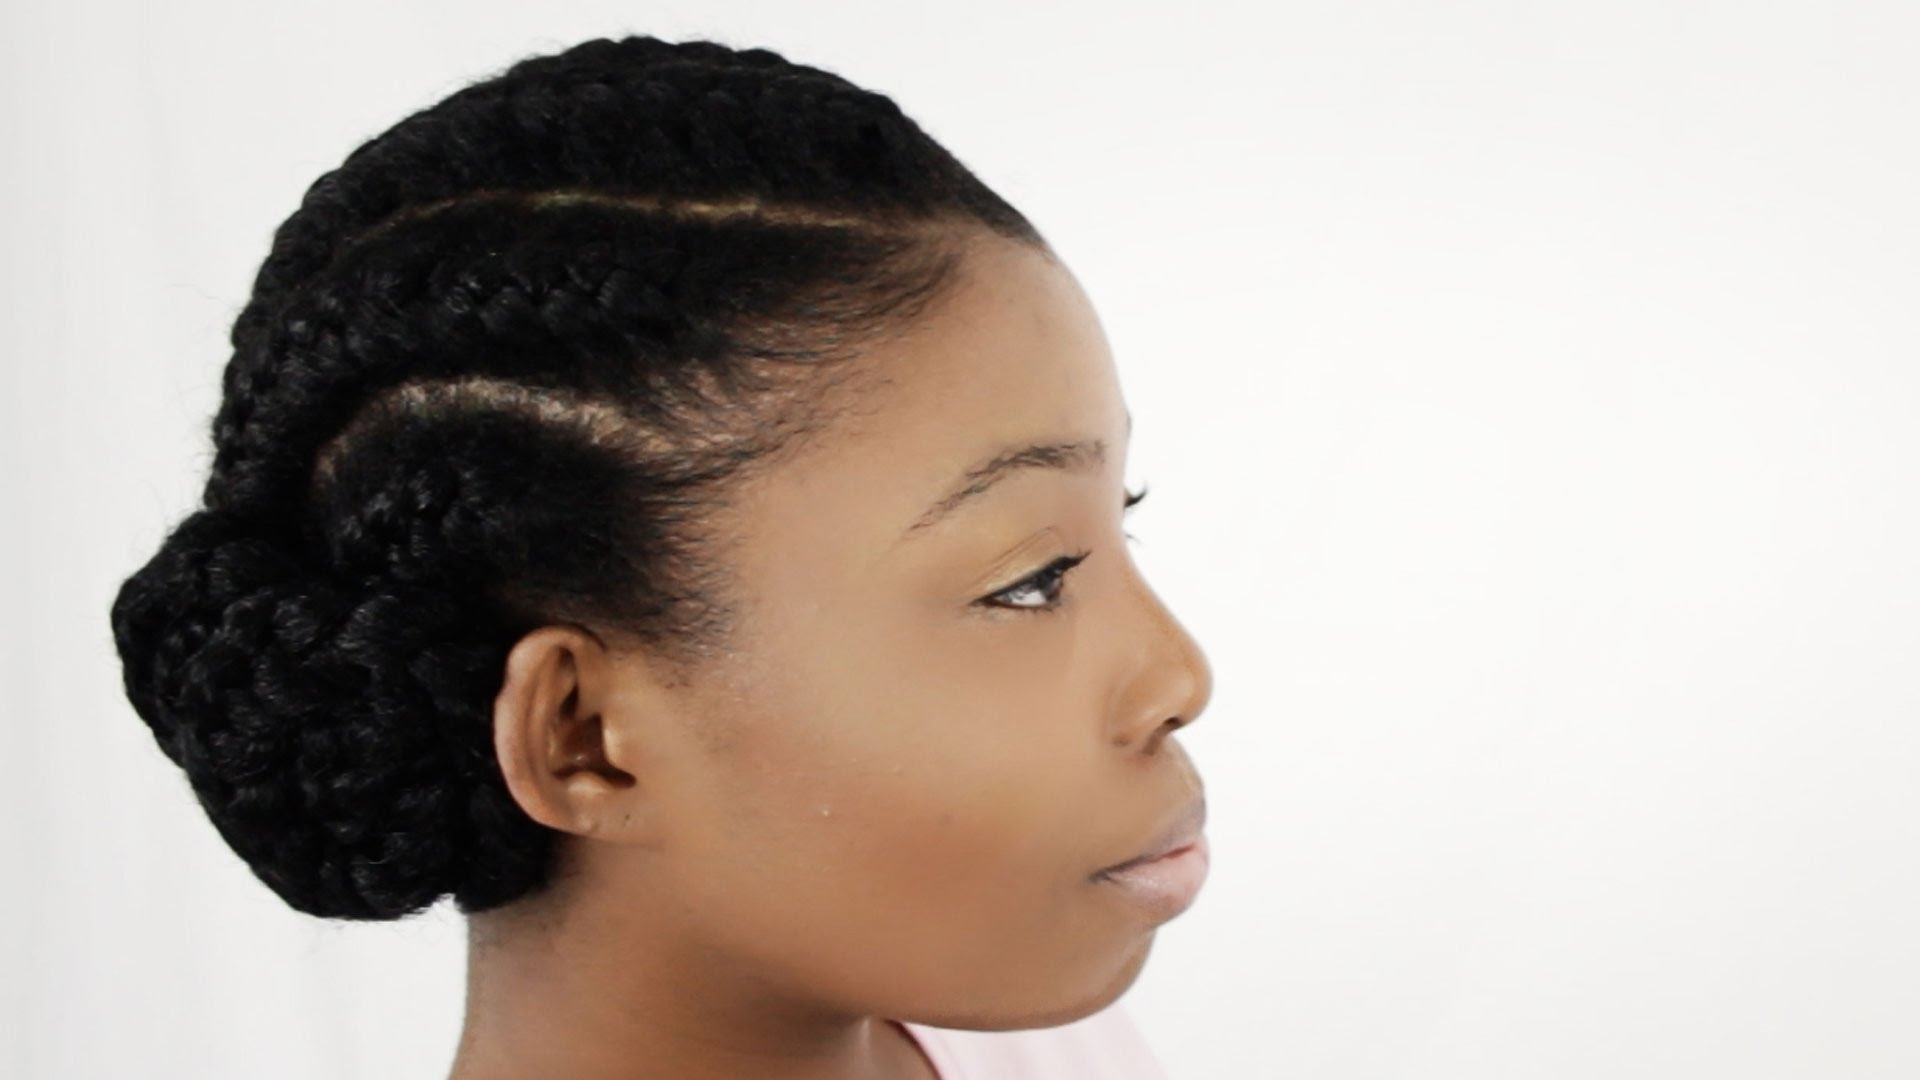 How To Do Goddess Braids With Weave Extensions On Natural Hair With Braided Updo Hairstyles With Extensions (View 12 of 15)